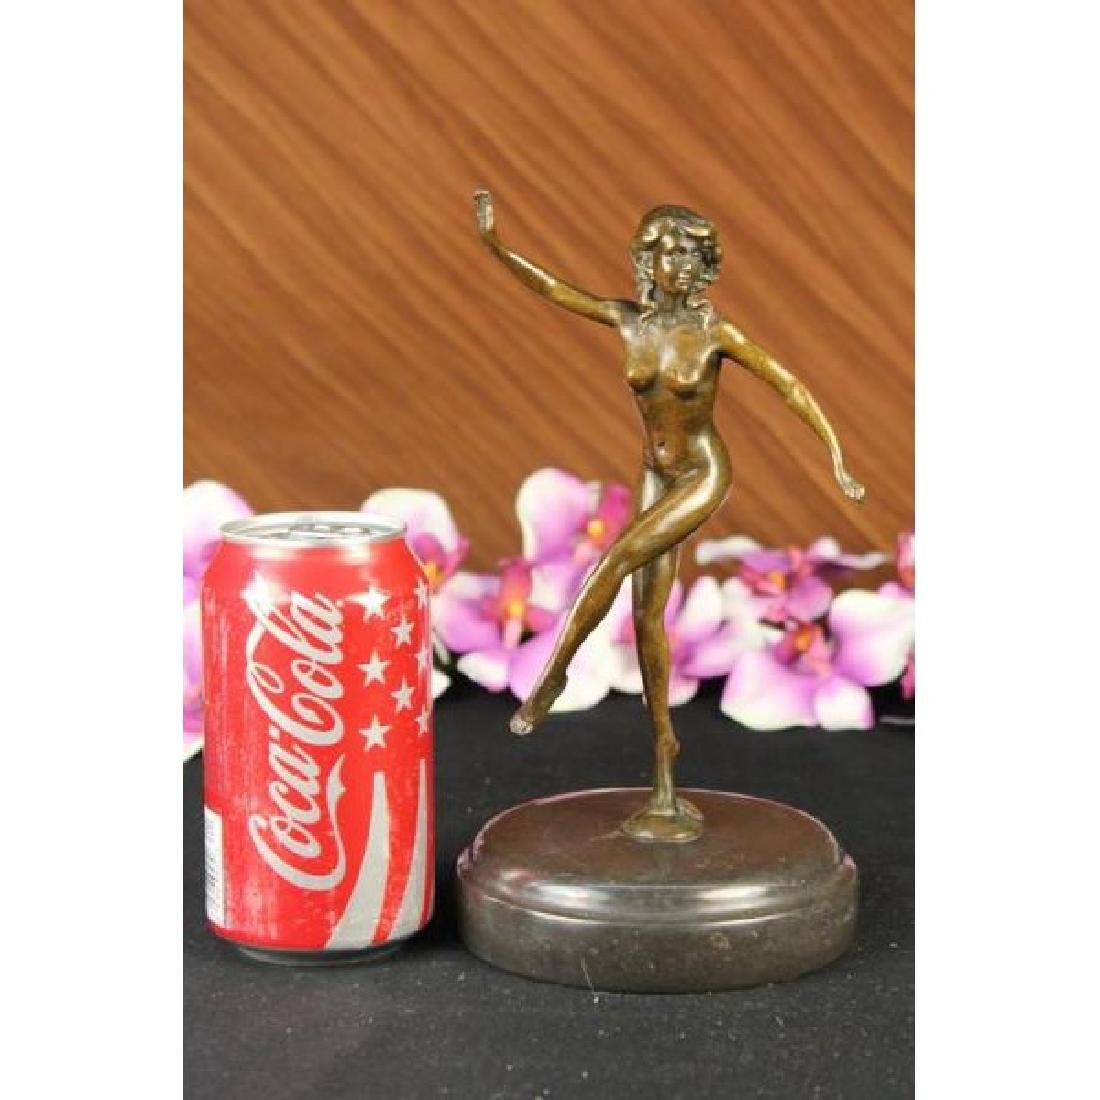 CLASSIC PIN UP GIRL BRONZE SCULPTURE NUDE STATUE